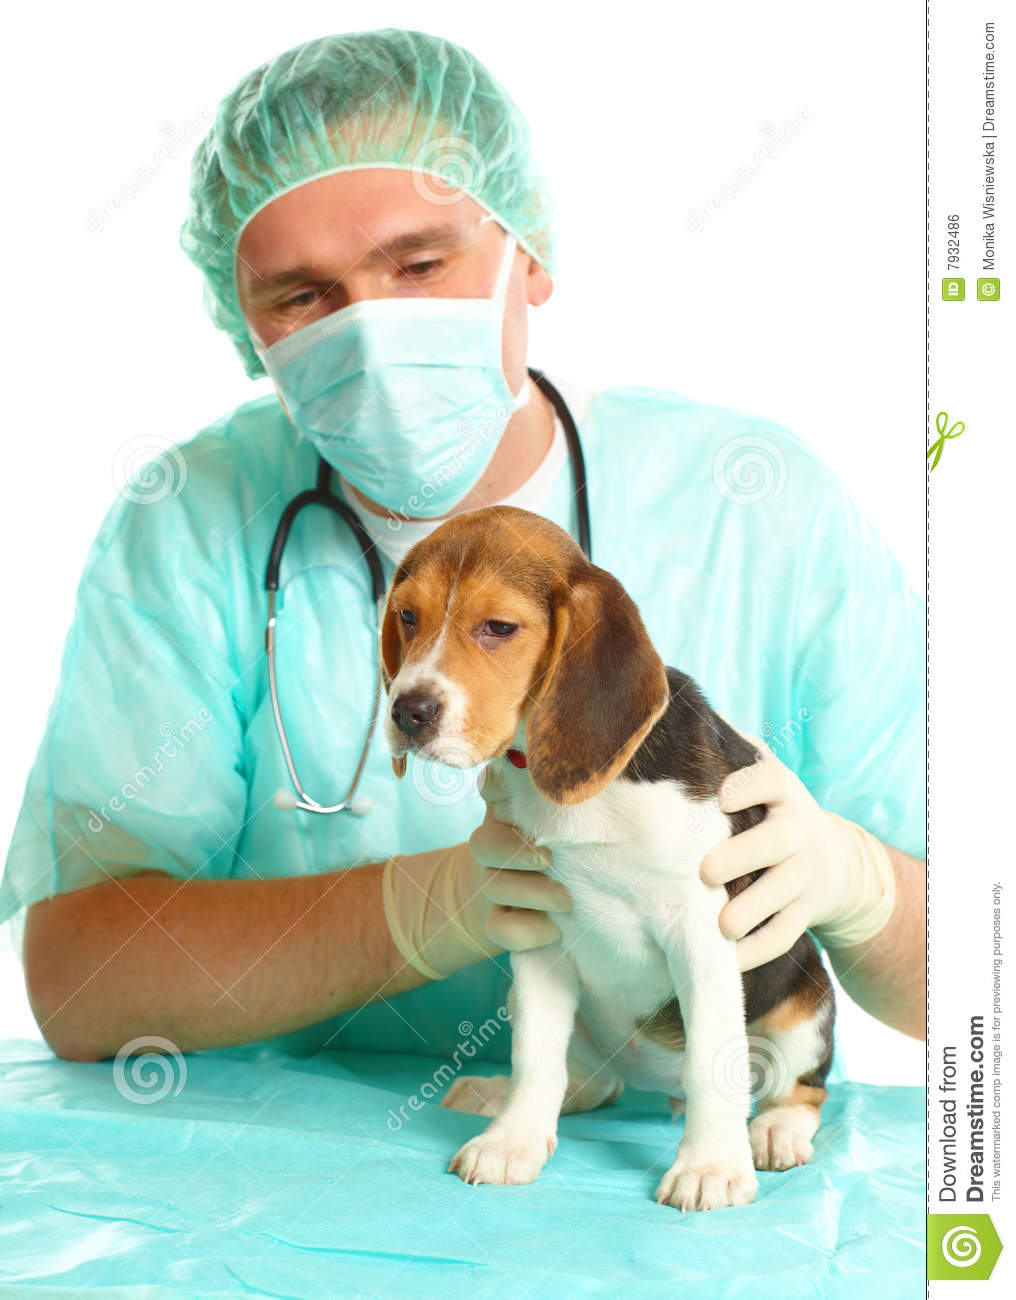 Veterinarian Doctor And A Beagle Puppy Royalty Free Stock